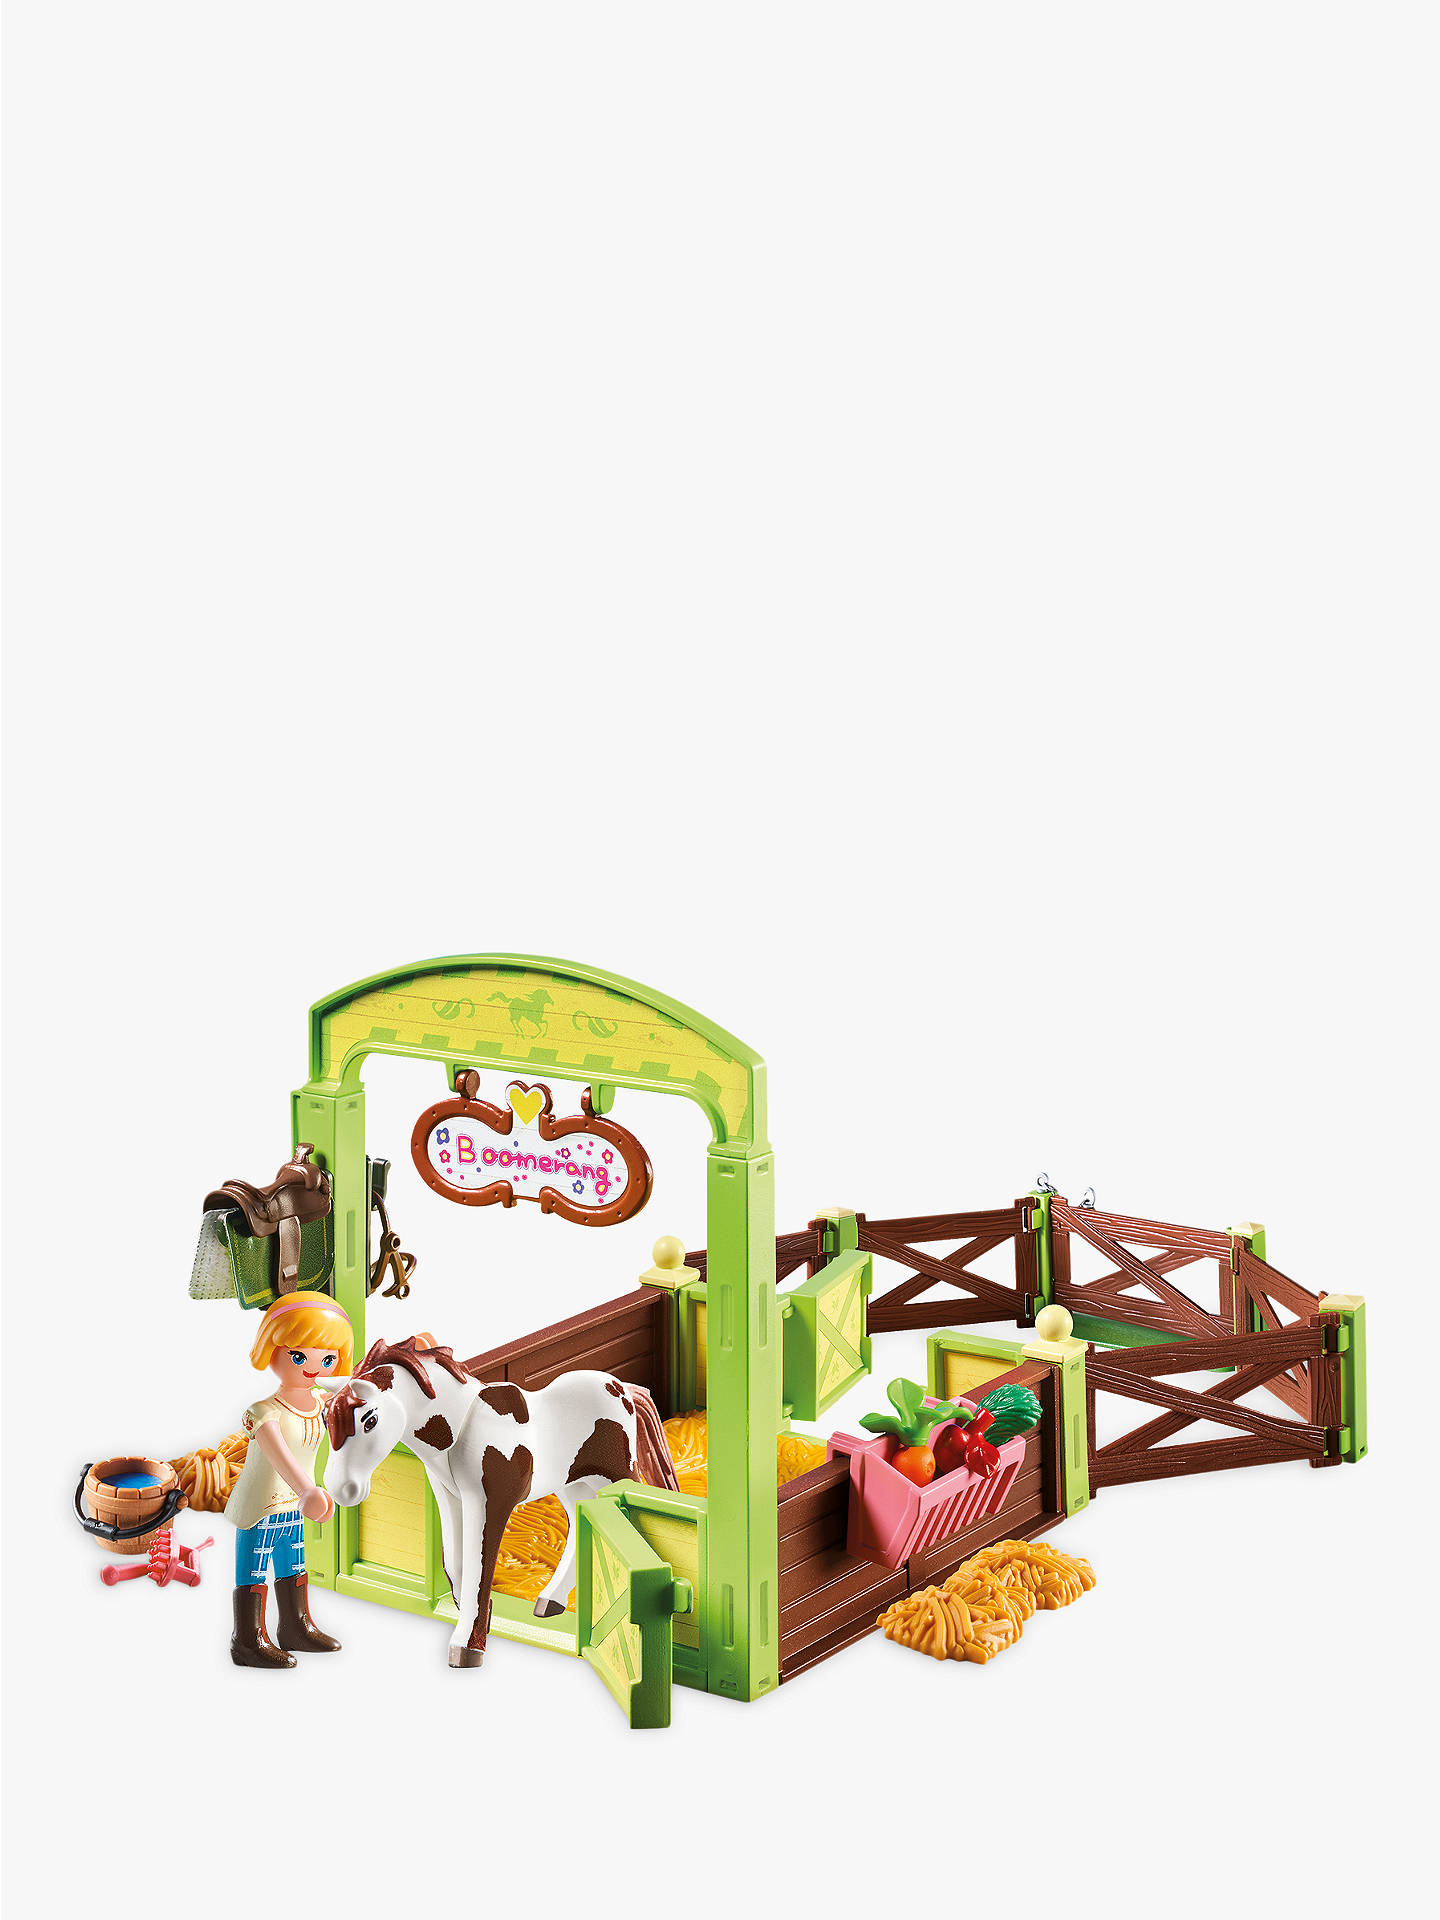 Buy Playmobil Dreamworks Spirit Riding Free 9480 Abigail And Boomerang With Horse Stall Online at johnlewis.com